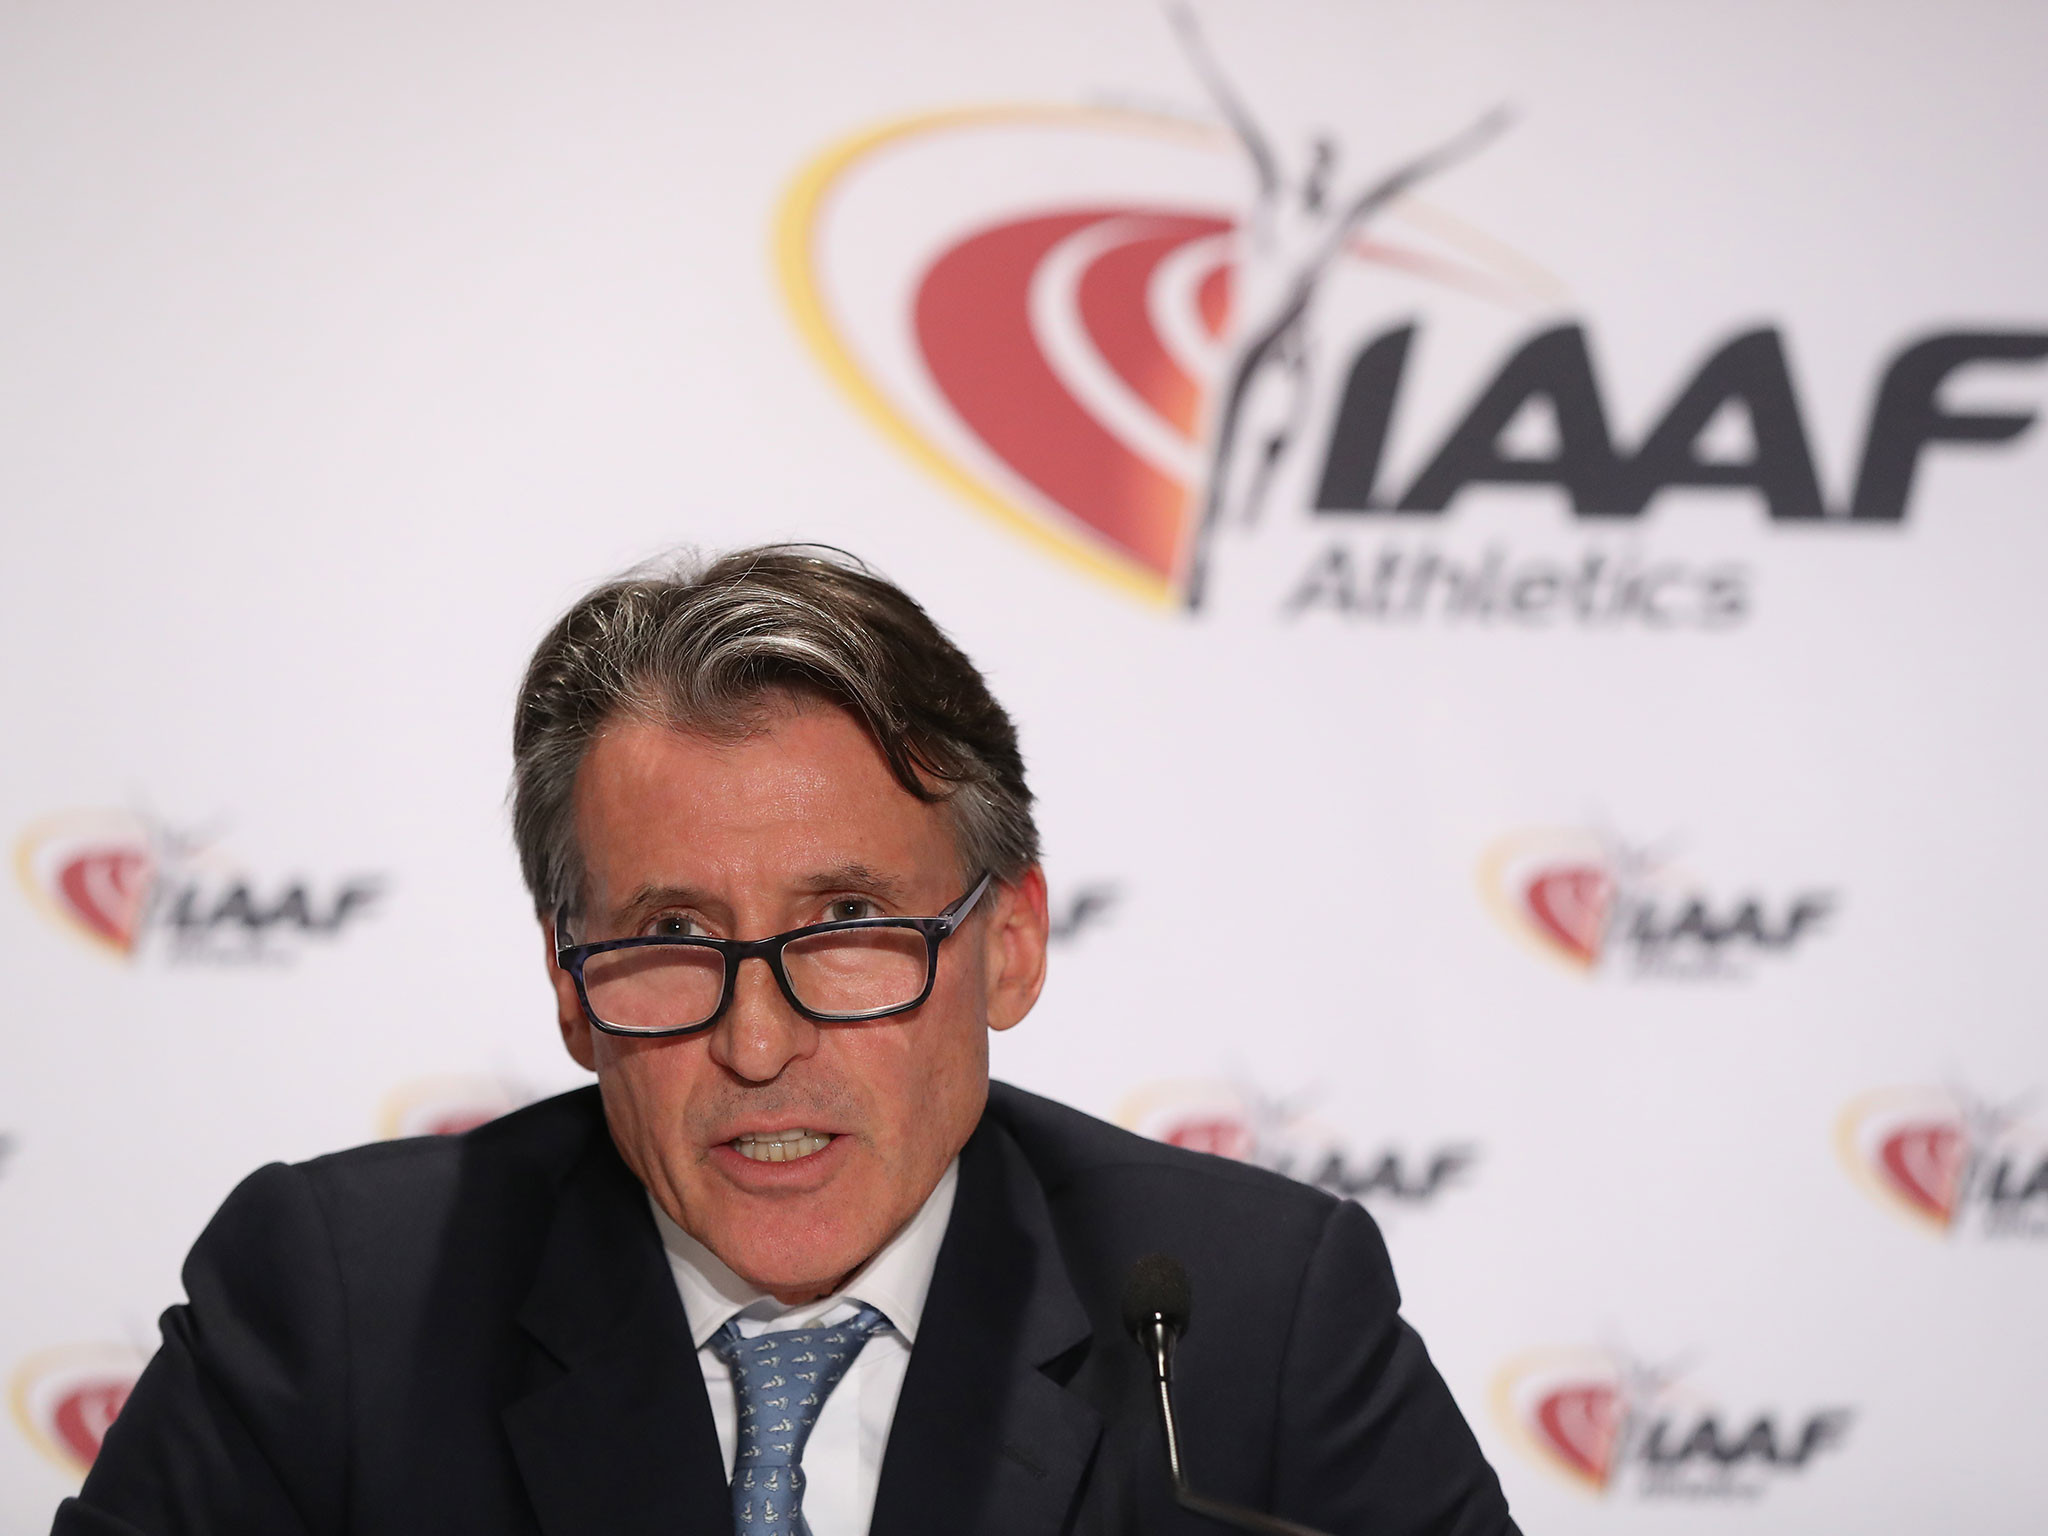 The conduct of IAAF President Sebastian Coe is criticised by the report ©Getty Images